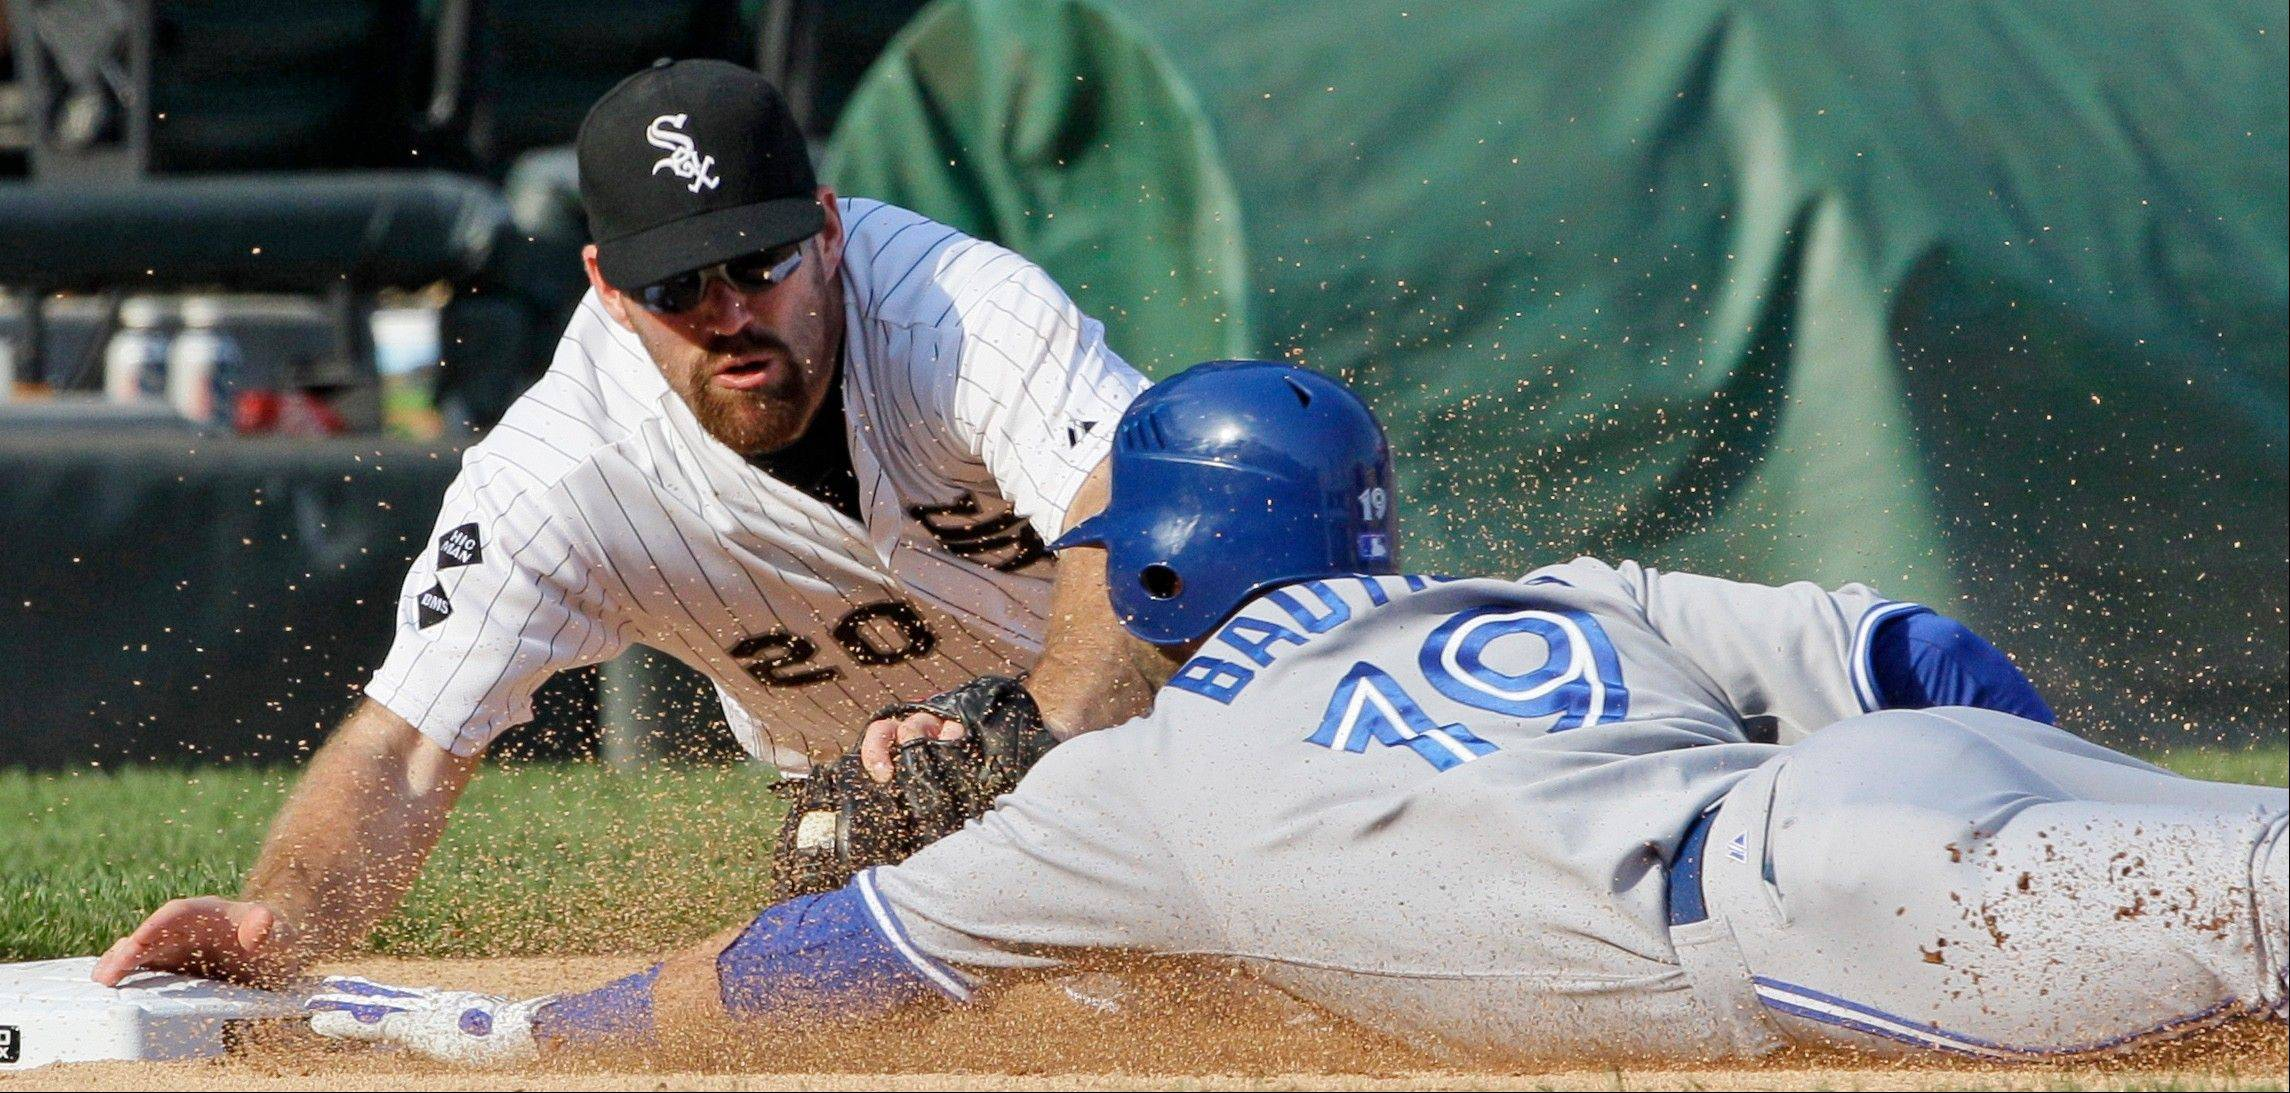 White Sox third baseman Kevin Youkilis tags out the Blue Jays� Jose Bautista in the ninth inning Saturday. It was Youkilis� 2-run homer in the fifth inning that tagged Toronto with the loss.